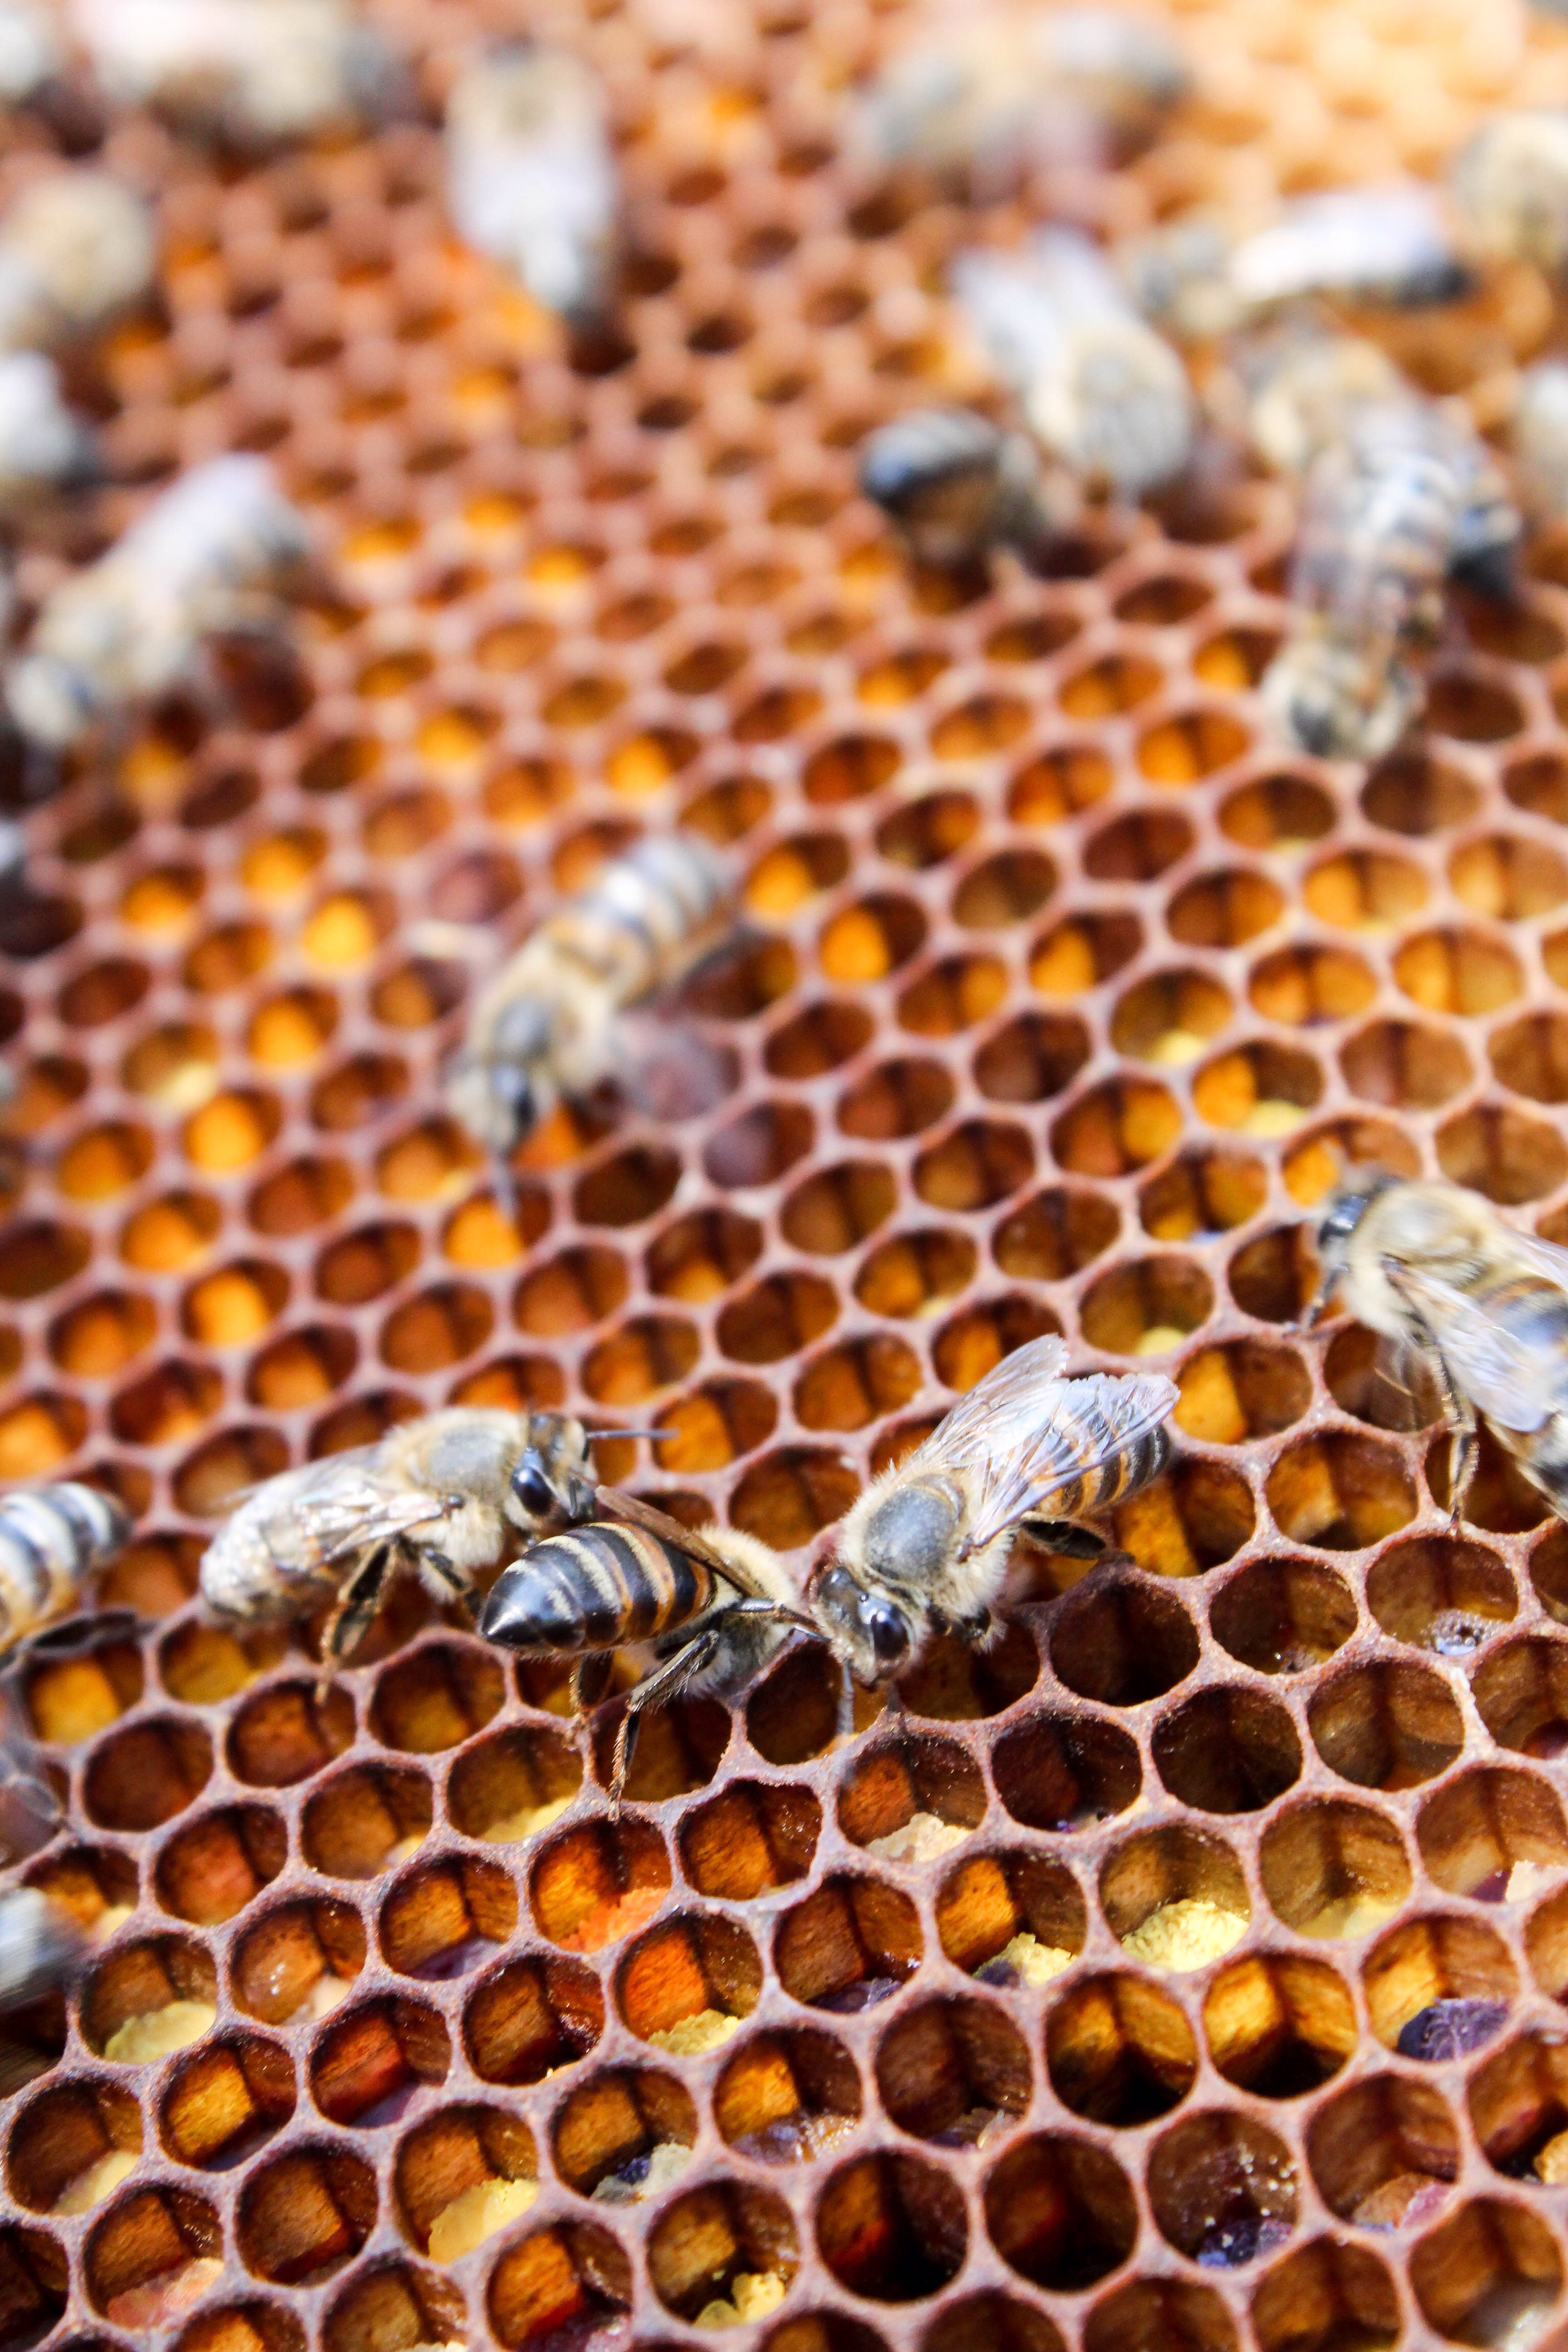 bees research paper A paper published in the journal nature discusses how bees are twice as likely to die when exposed to pesticides two-thirds of the bees are lost when exposed compared to a third when not exposed the exposed bees are also half as successful in gathering food.